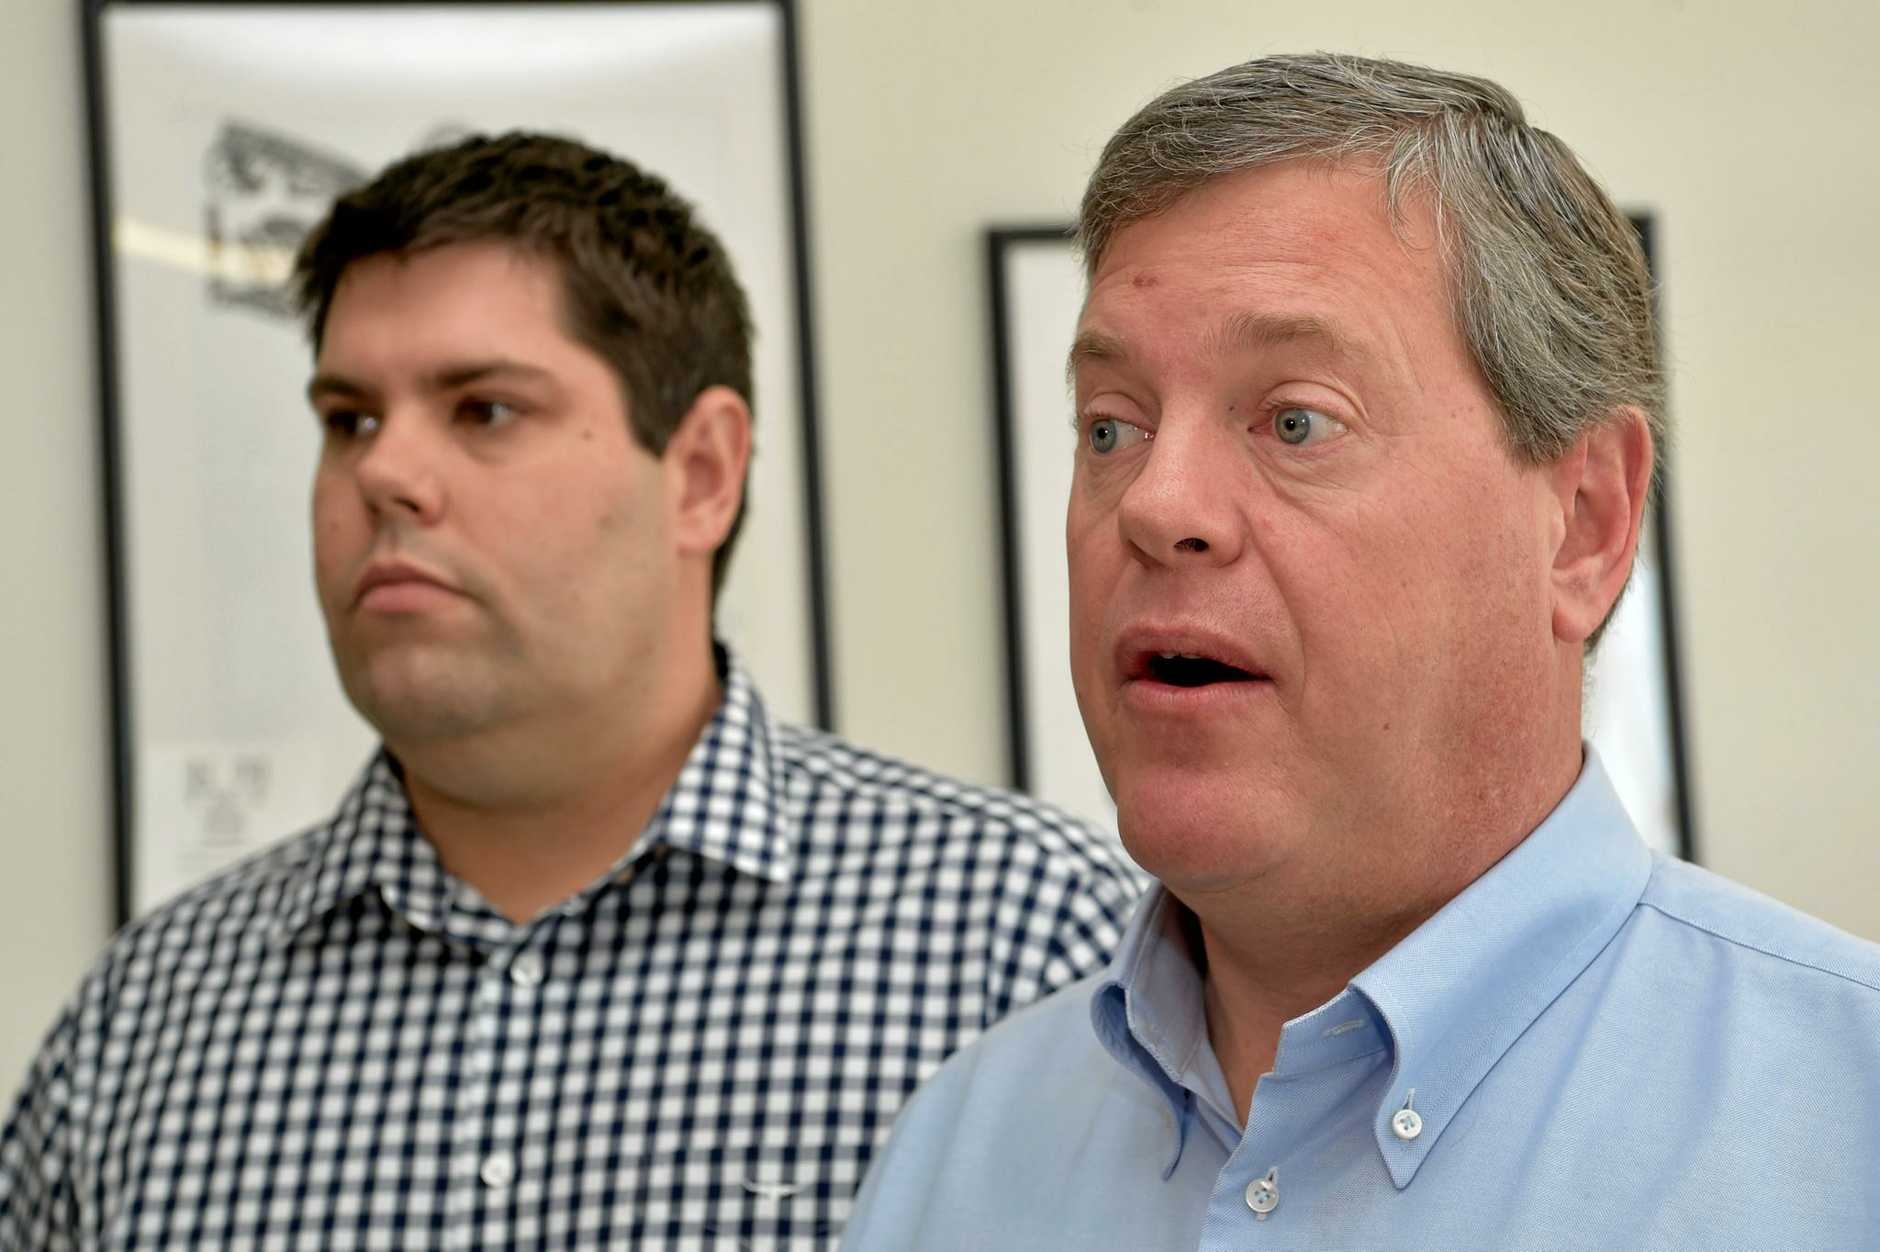 LNP State leader Tim Nicholls on the Sunshine Coast this week with Buderim candidate Brent Mickelberg (left) is unrecognisable to 10% of voters in the electorate, according to a Sunshine Coast Daily poll and not overly loved by those that do.